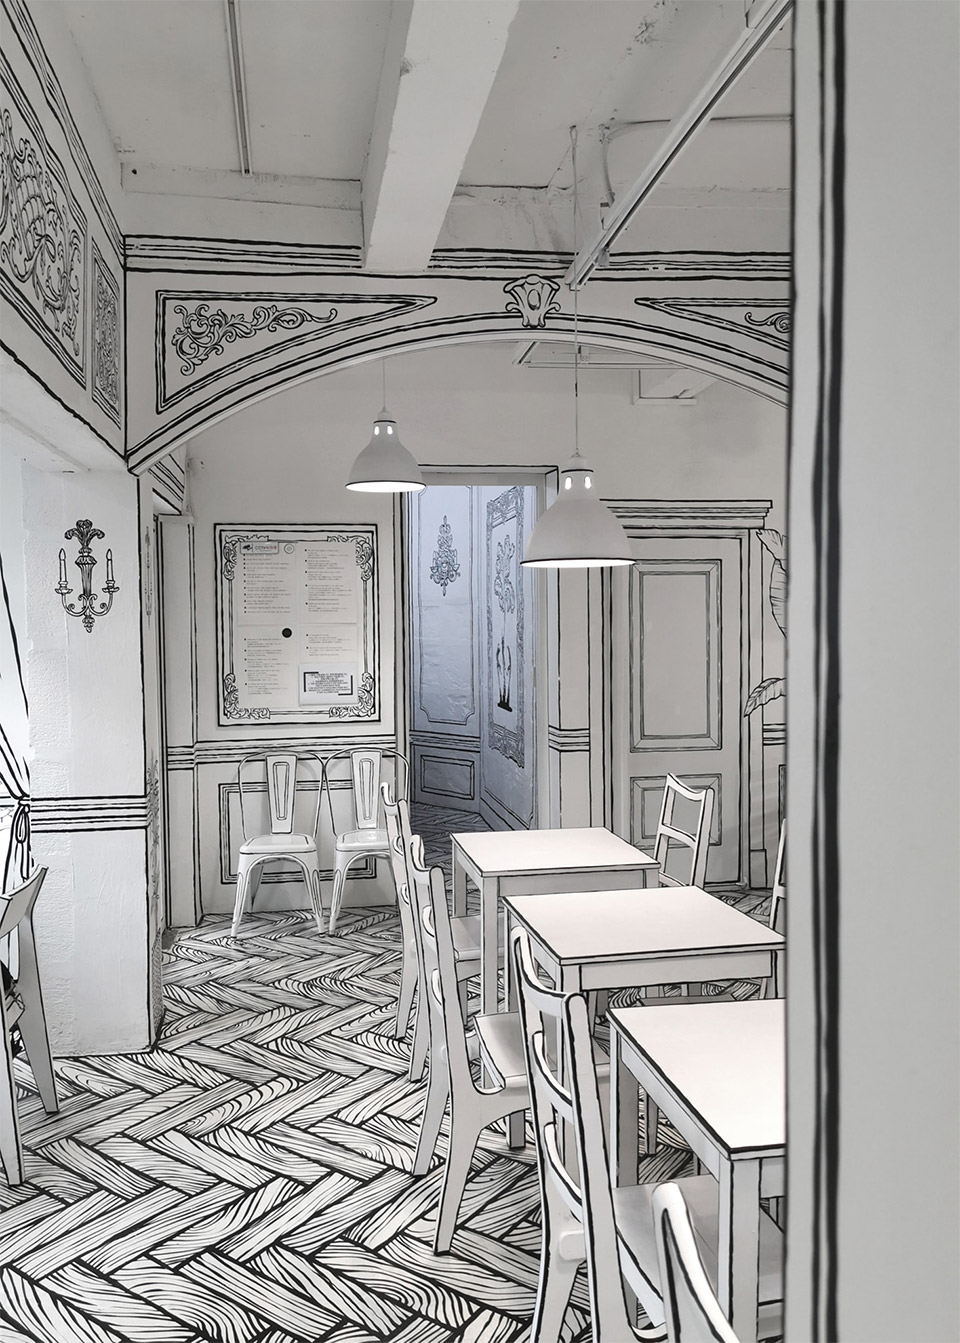 This Korean Cafe Looks Like a Black and White Illustration ...